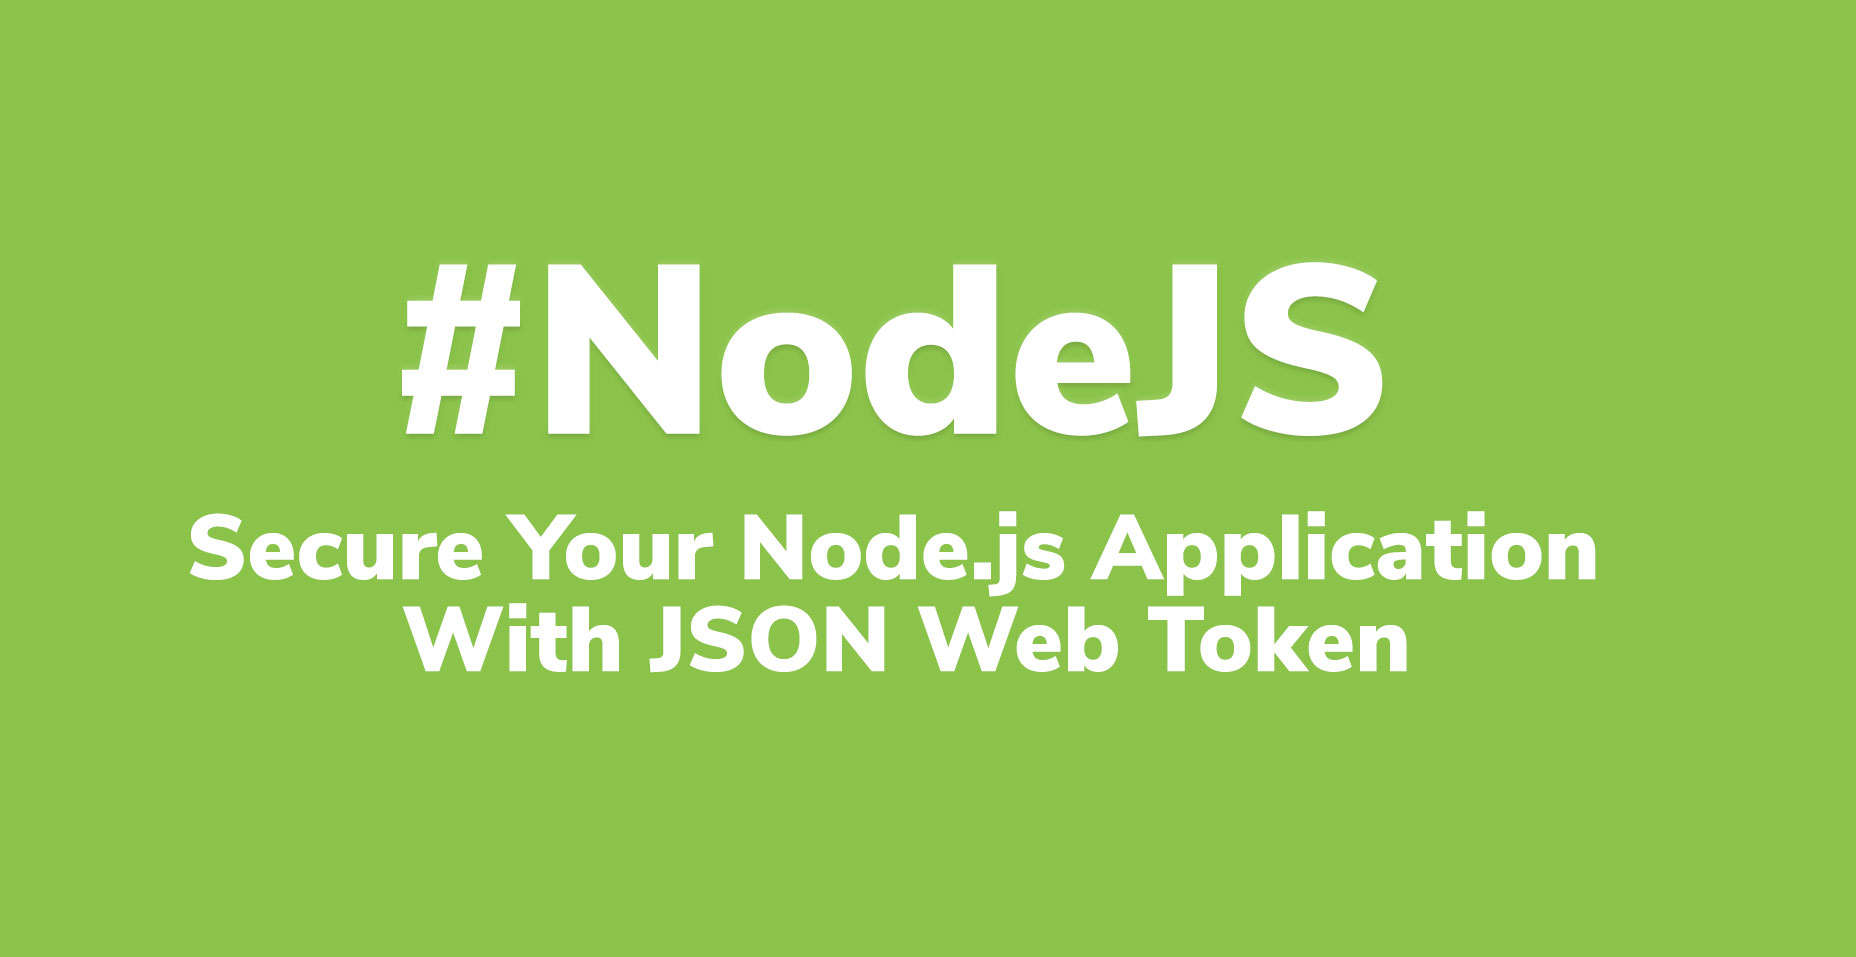 How To Secure Your Node js Application With JSON Web Token